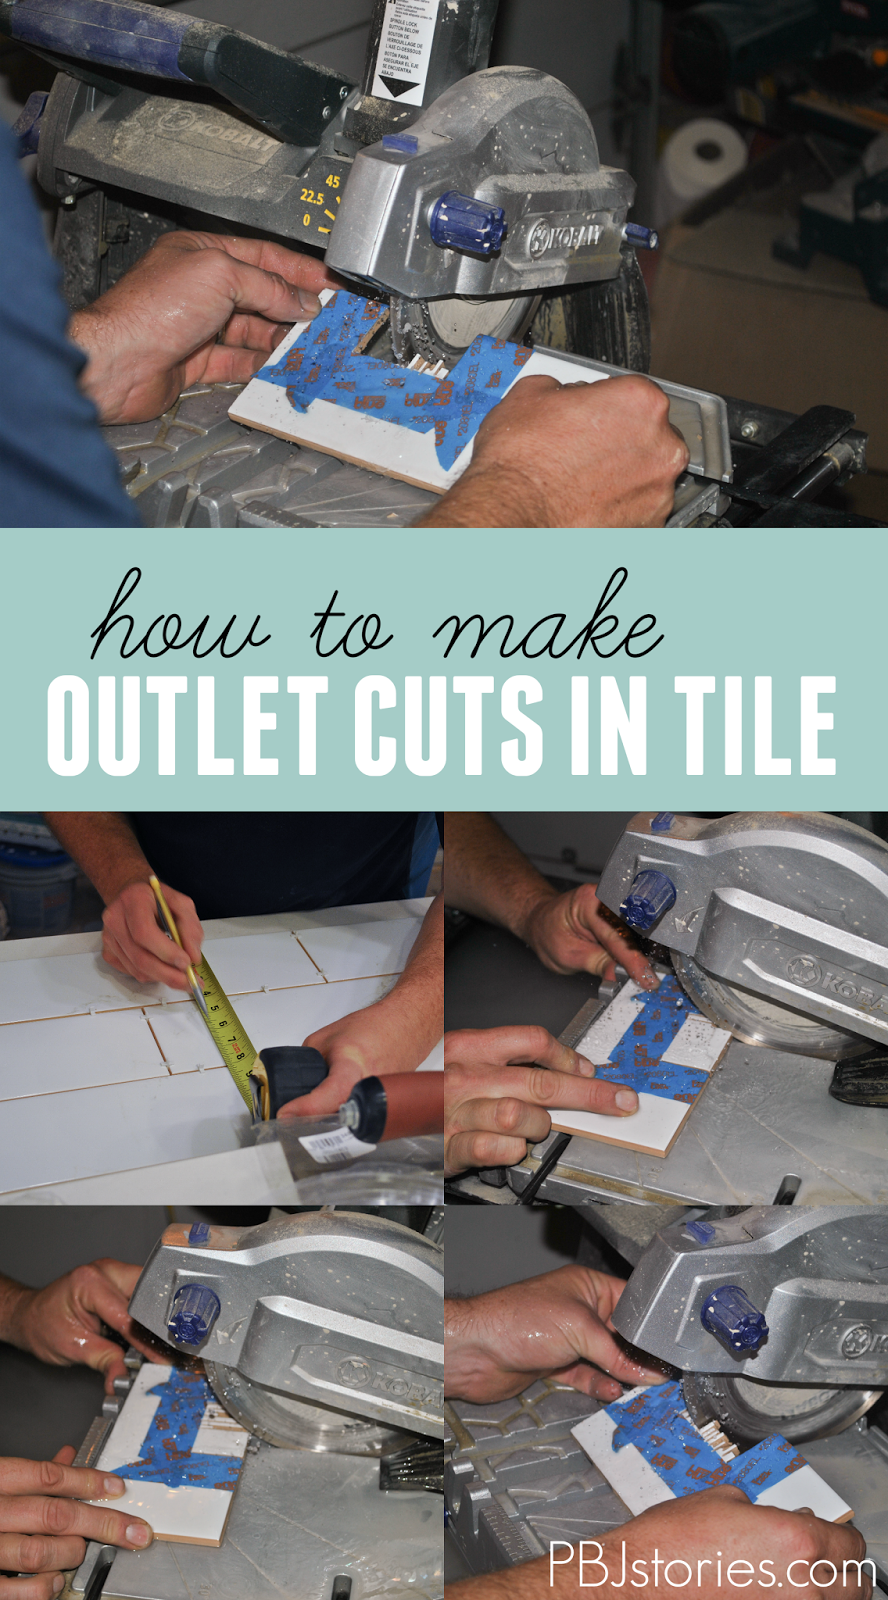 How to cut backsplash tiles for outlets and light switches how to cut backsplash tiles for outlets and light switches pbjstories dailygadgetfo Choice Image